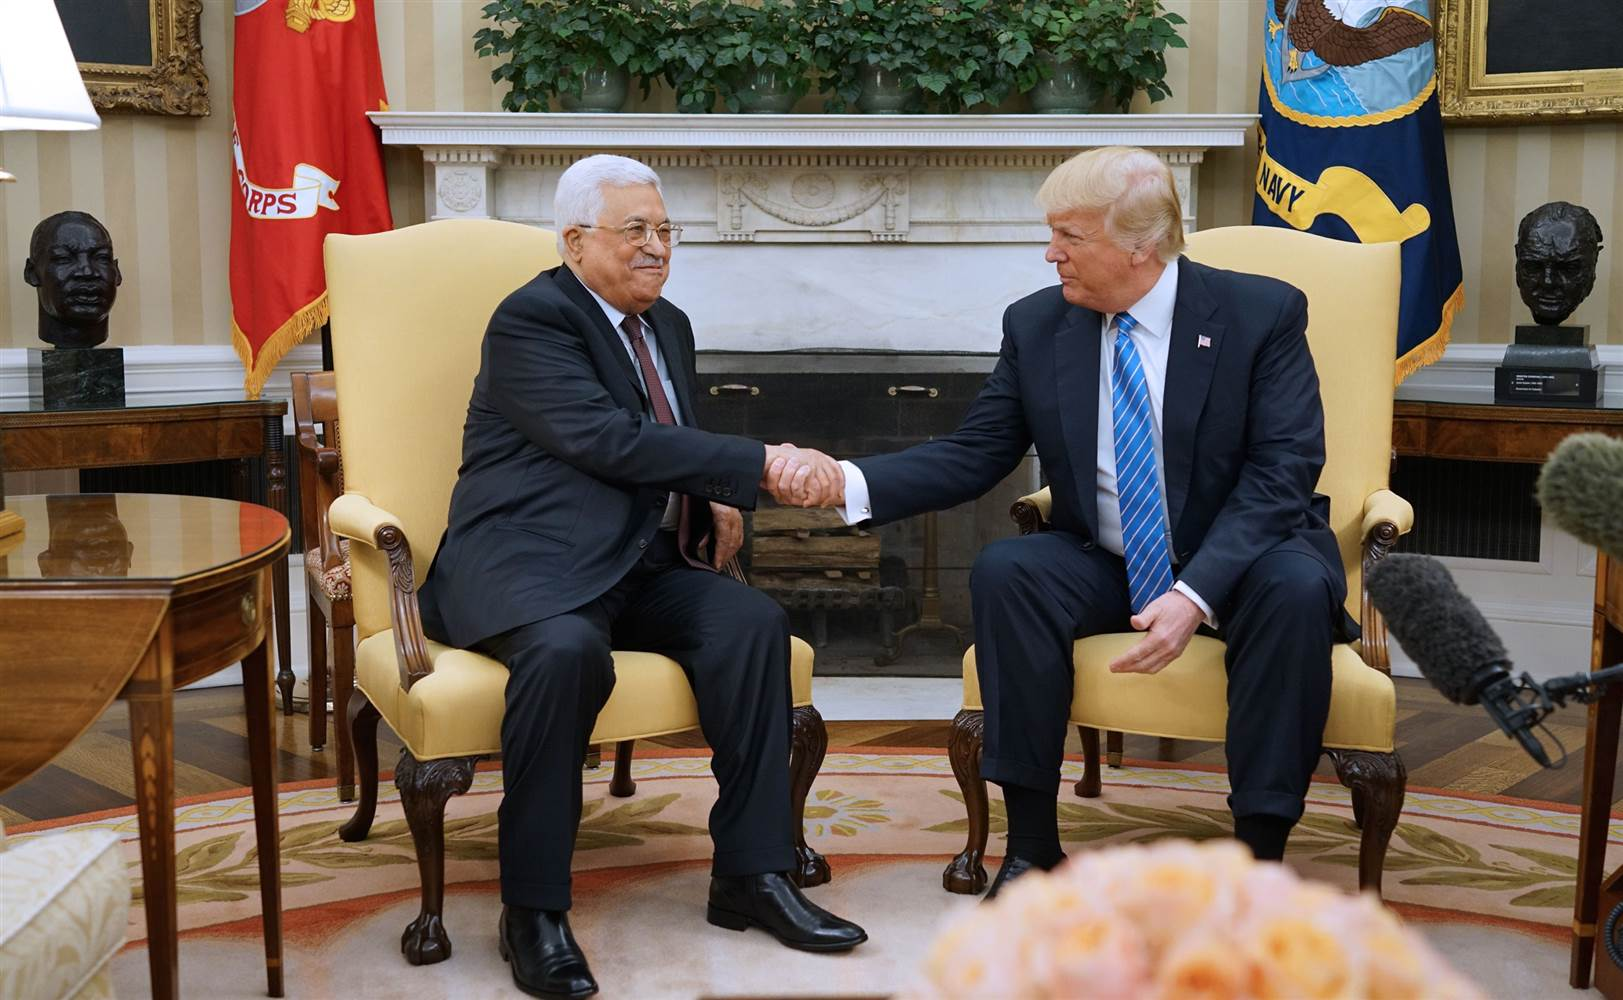 US President Donald Trump and Palestinian President Mahmoud Abbas